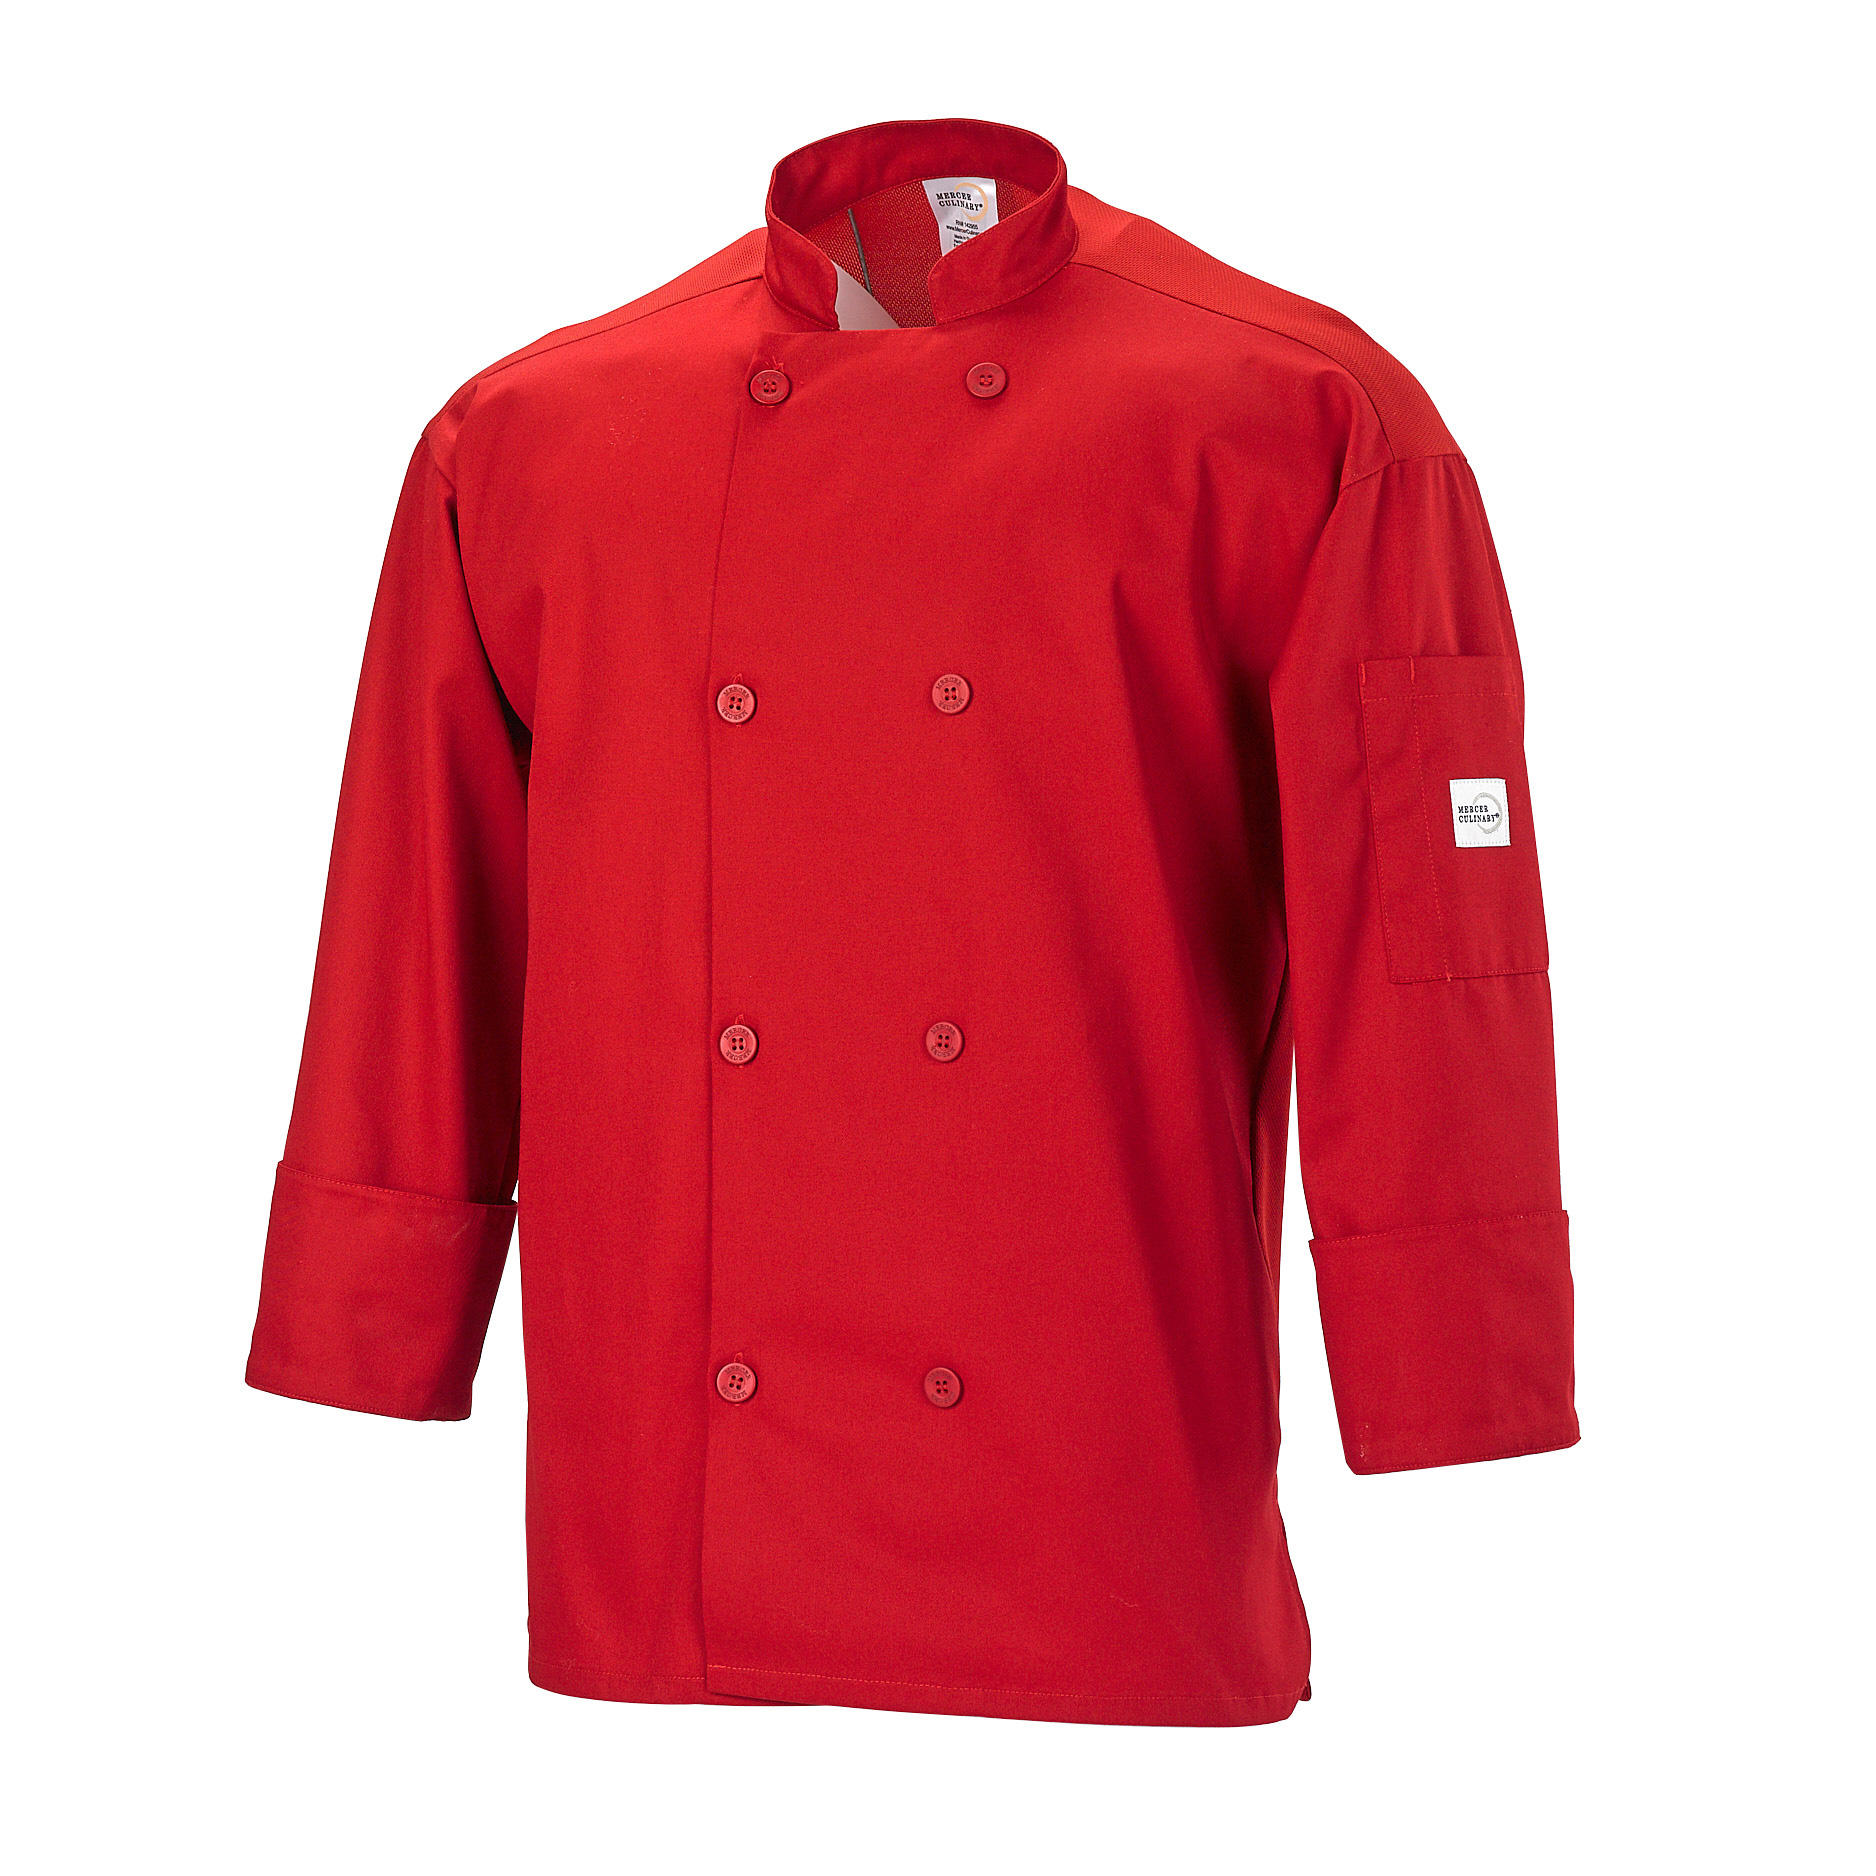 Mercer Culinary M60017RDM chef's coat